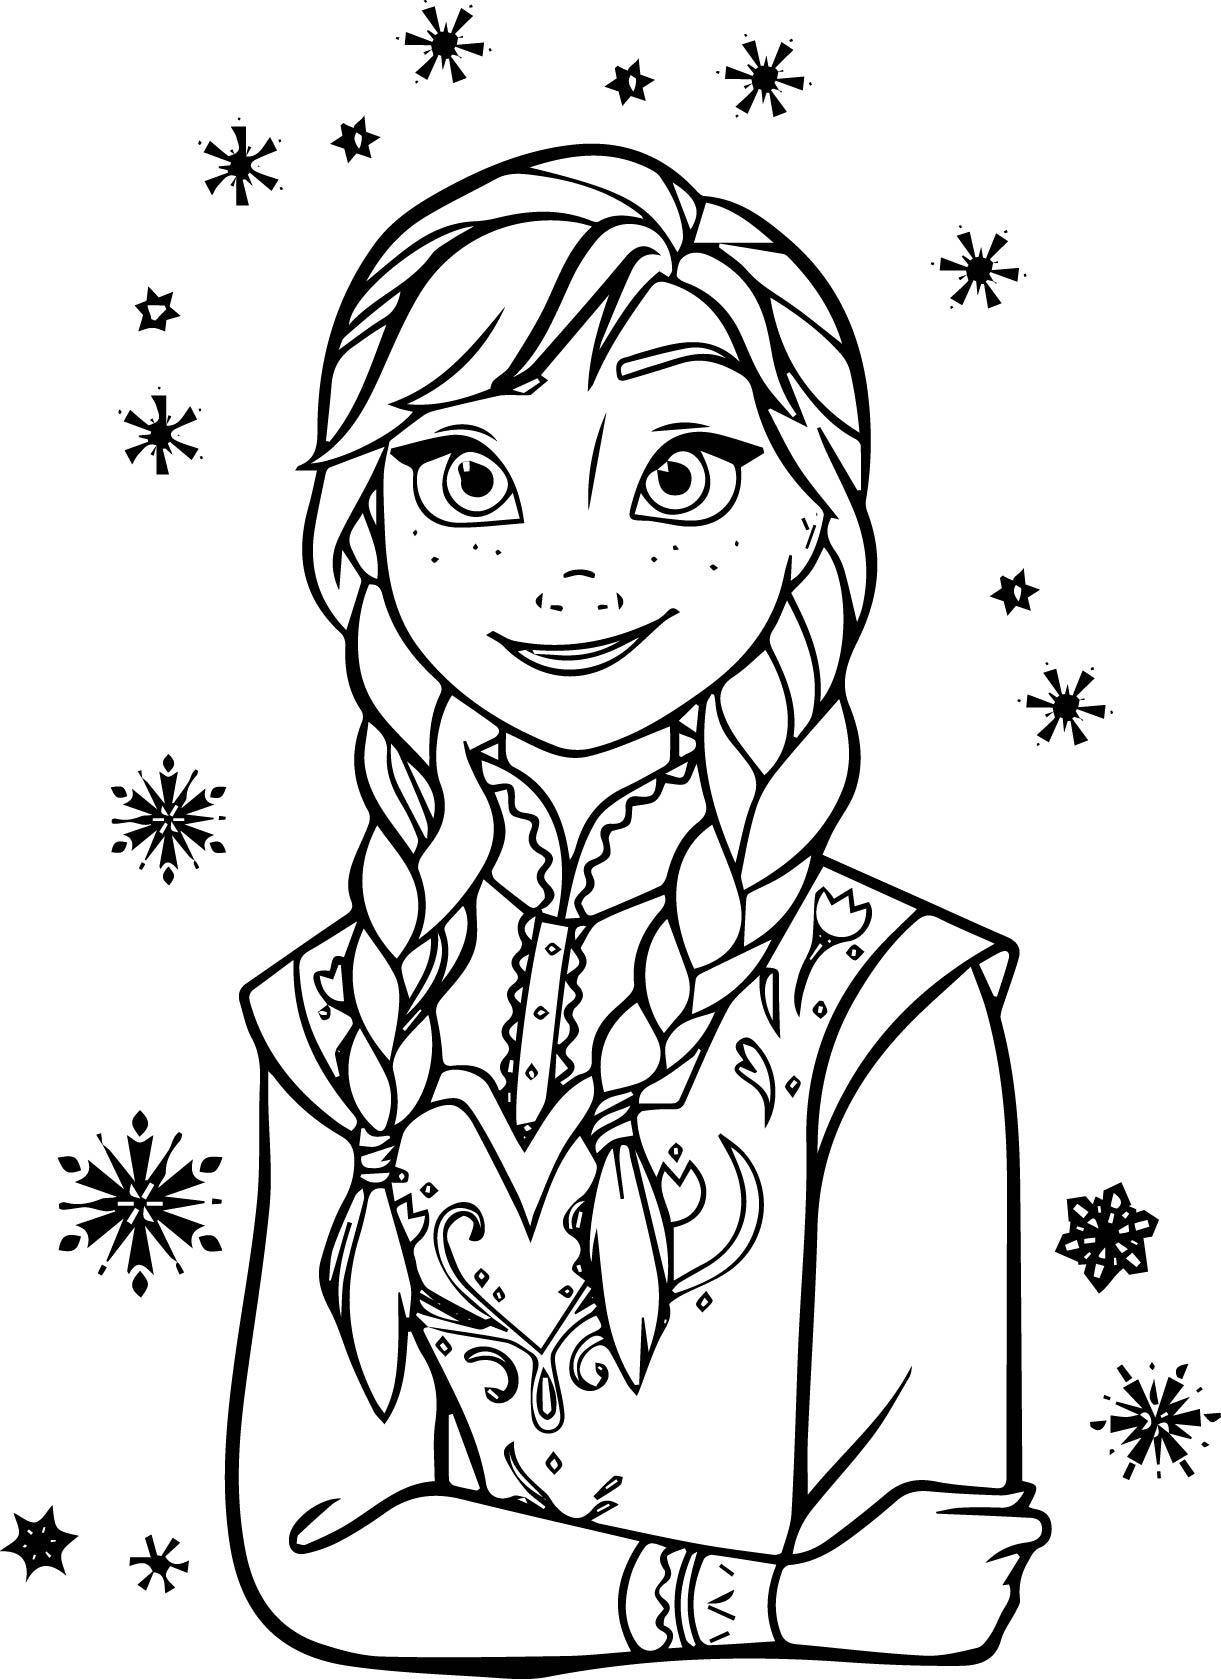 Frozen Coloring Pages Free Printables at GetDrawings ...